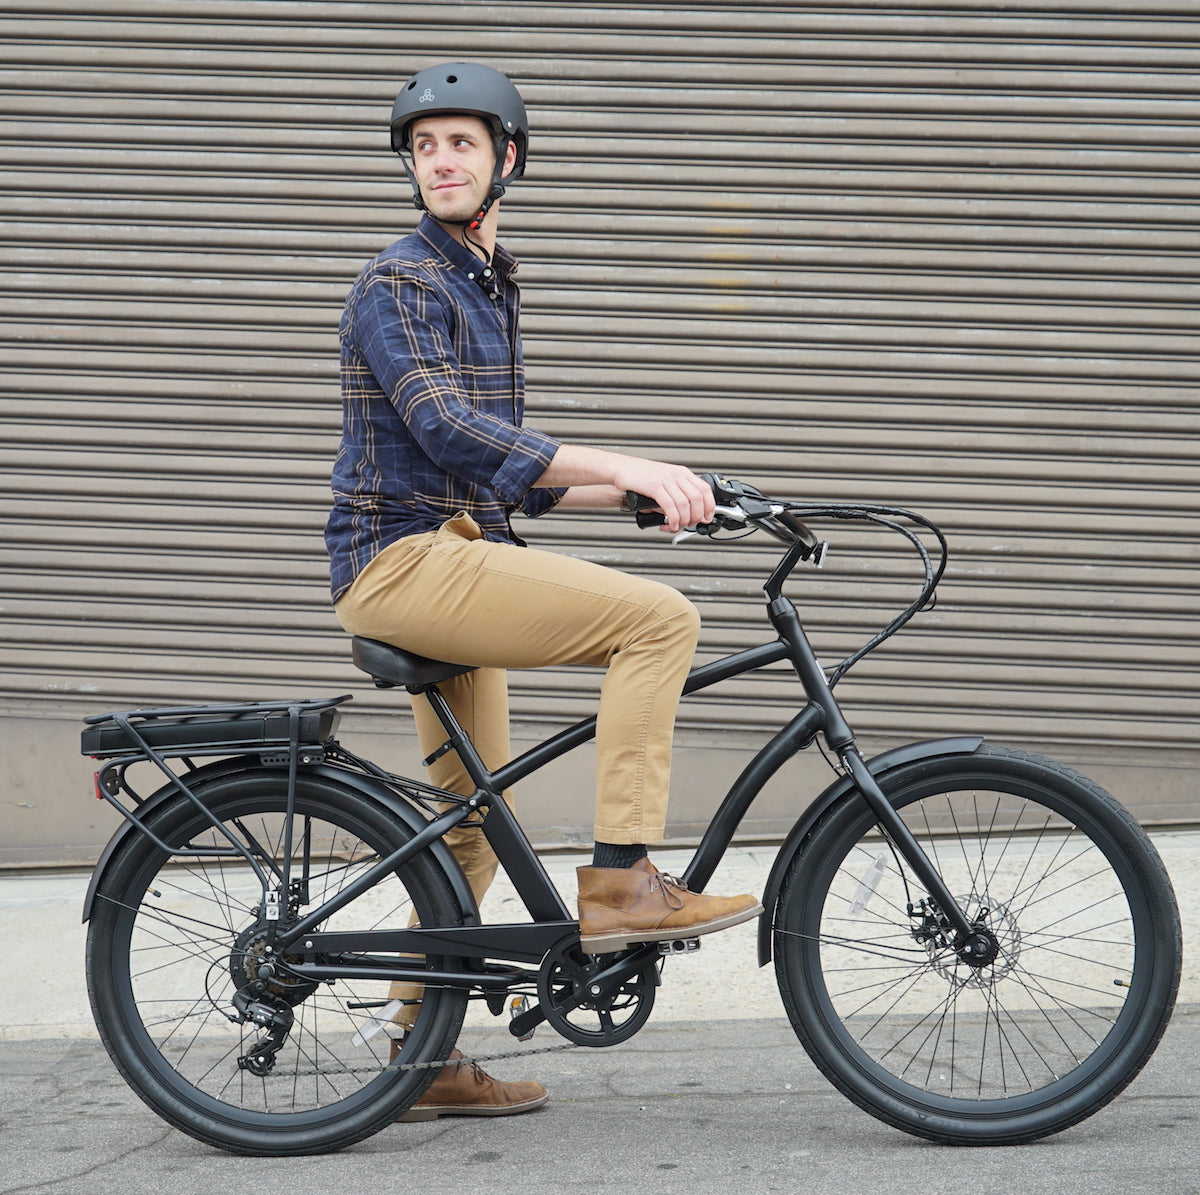 California Electric Bike Laws